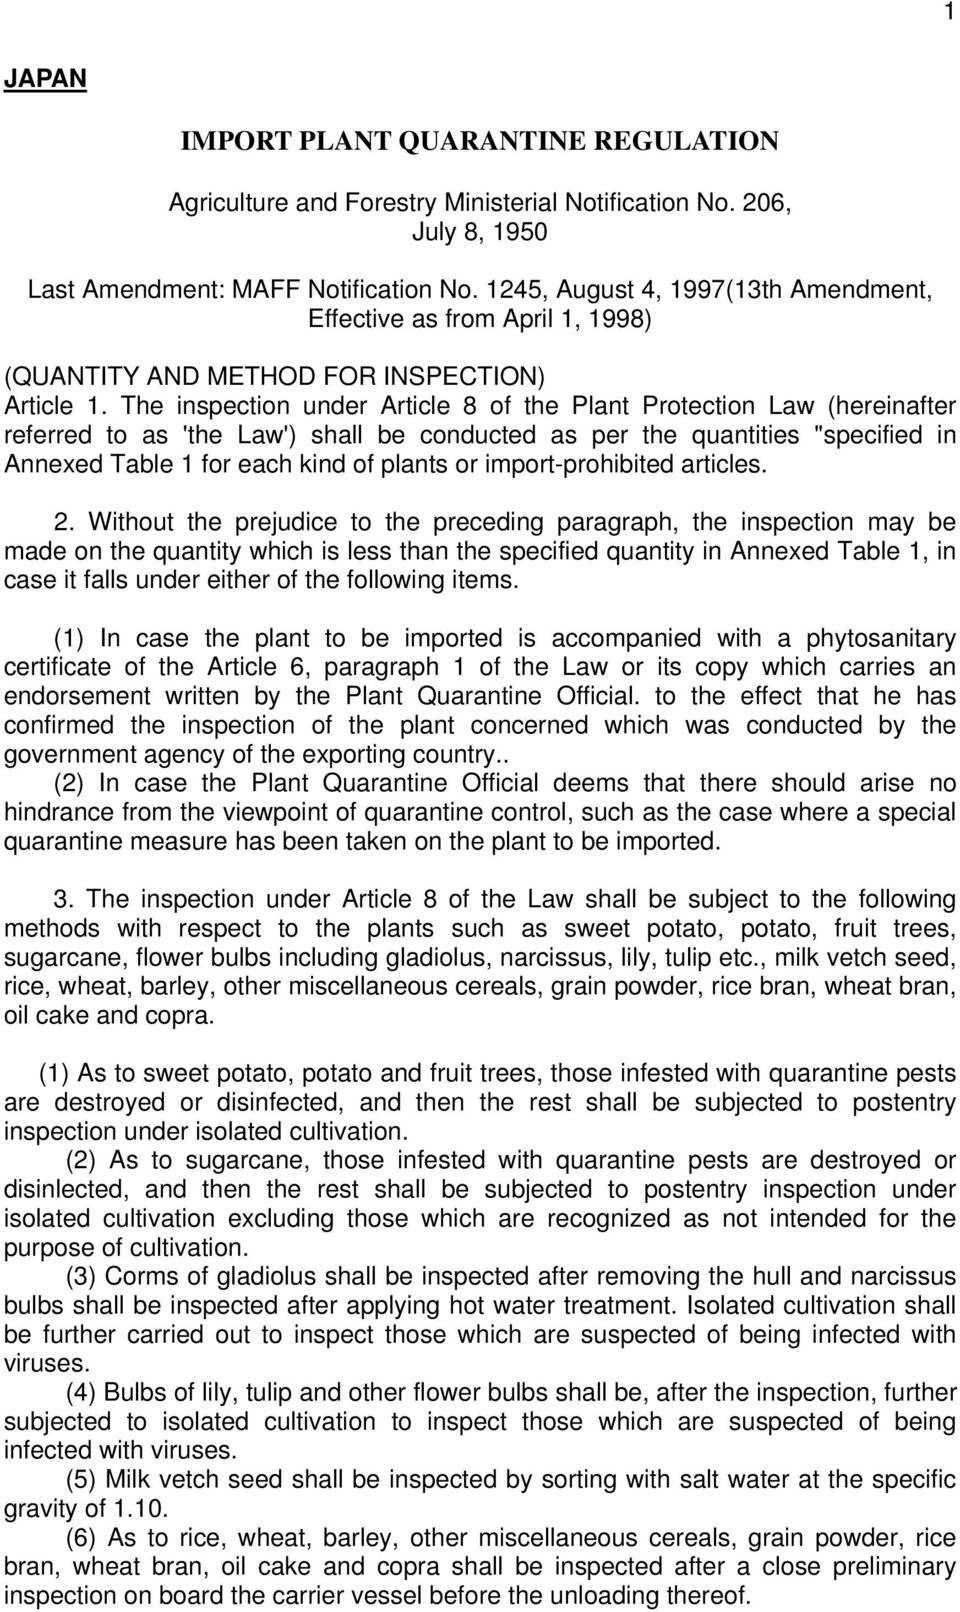 "The inspection under Article 8 of the Plant Protection Law (hereinafter referred to as 'the Law') shall be conducted as per the quantities ""specified in Annexed Table 1 for each kind of plants or"